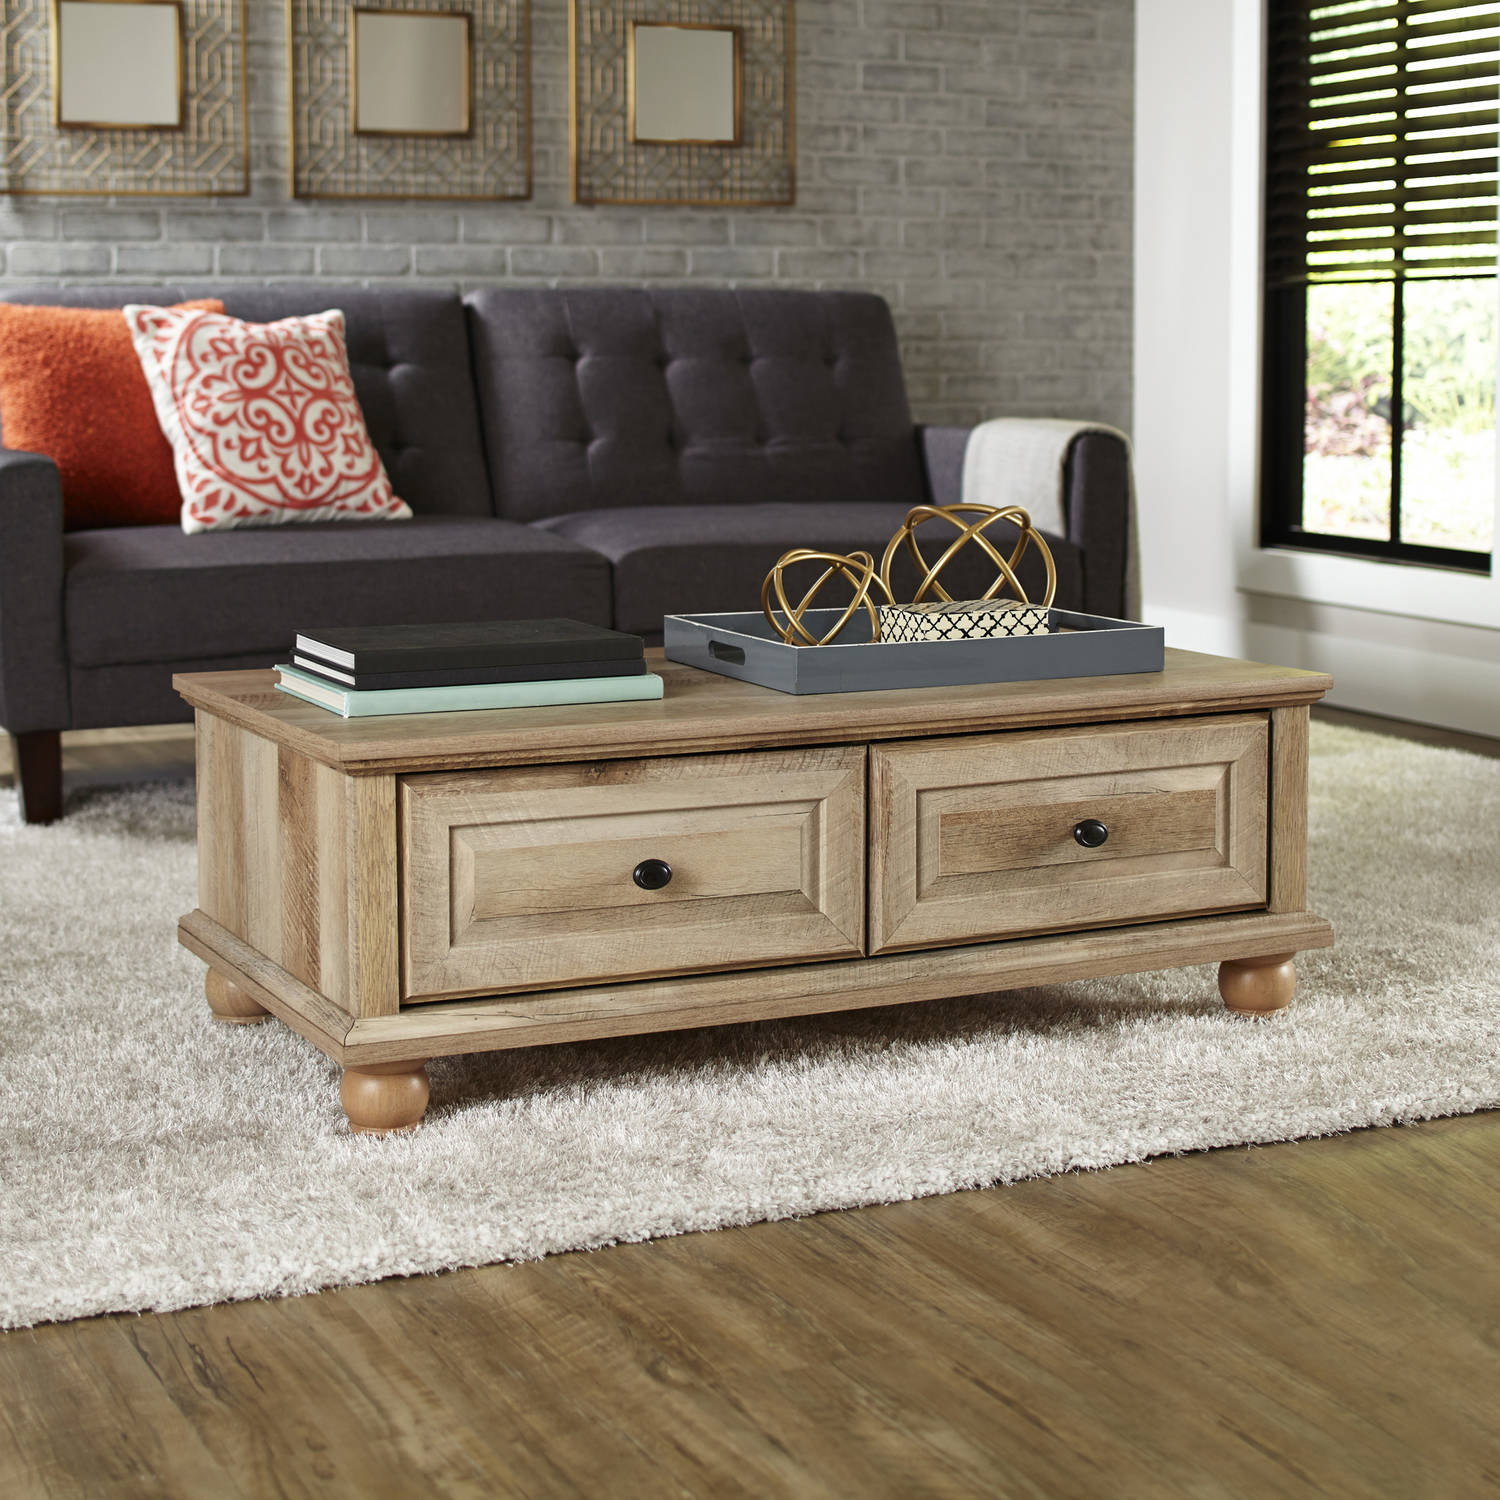 Better Homes and Gardens Crossmill Coffee Table, Multiple Finishes by Sauder Woodworking